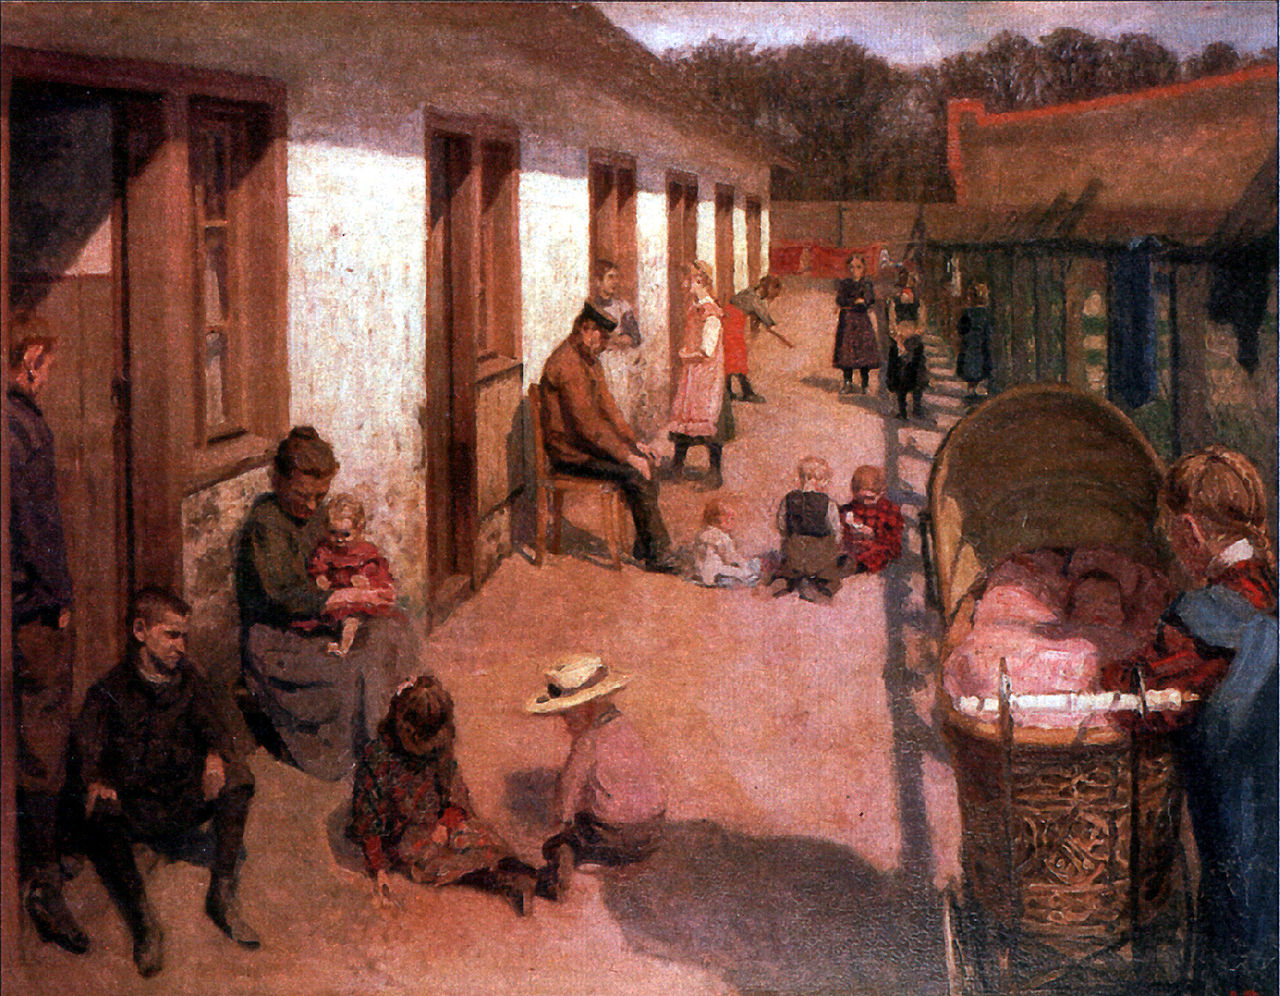 Residents of the poorhouse, Charlottenburg, by Jens Birkholm.